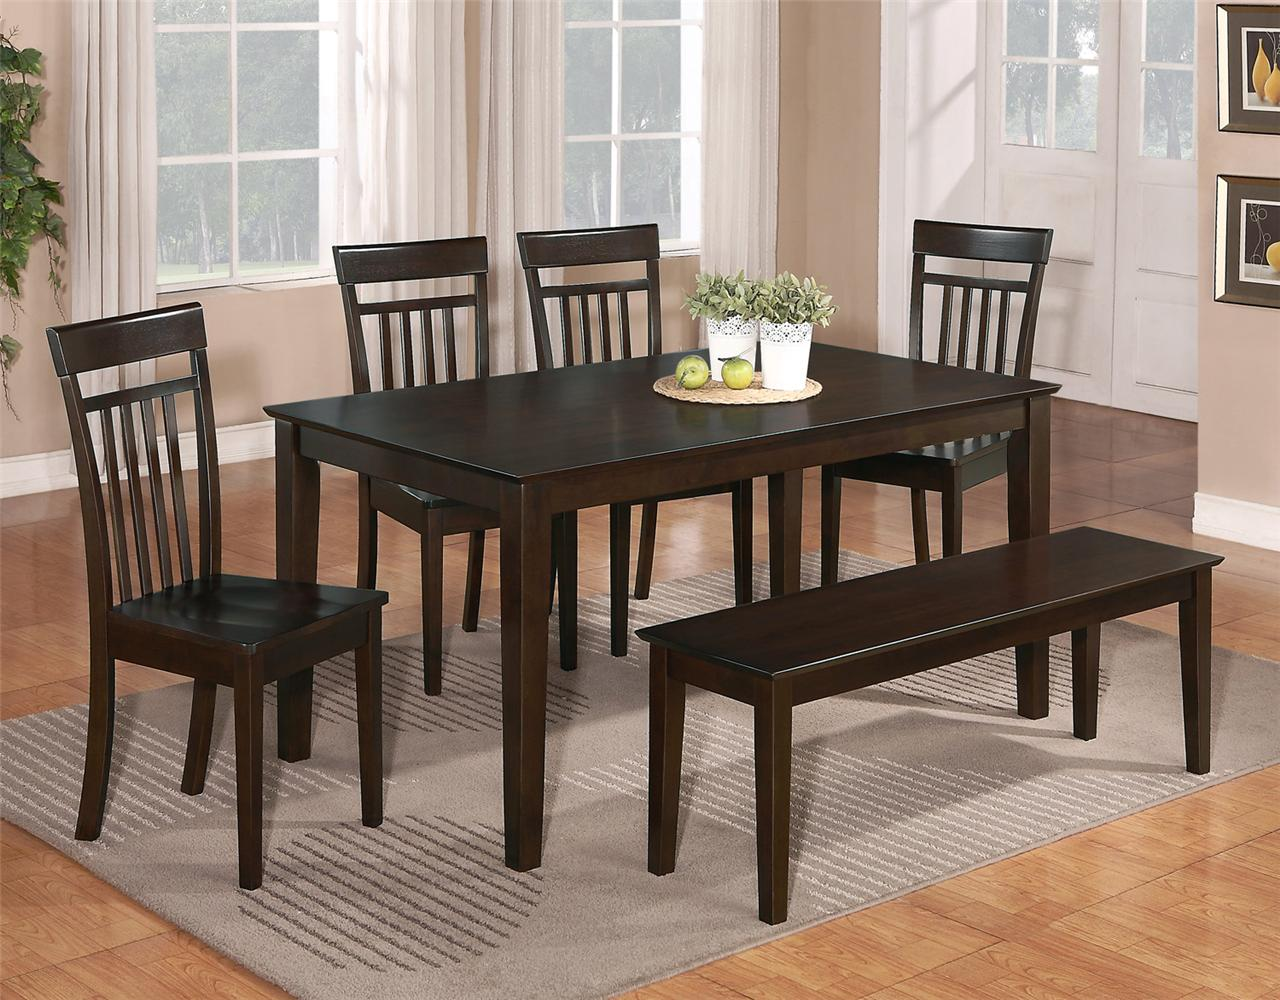 6 pc dinette kitchen dining room set table w 4 wood chair for Dining room table and bench set